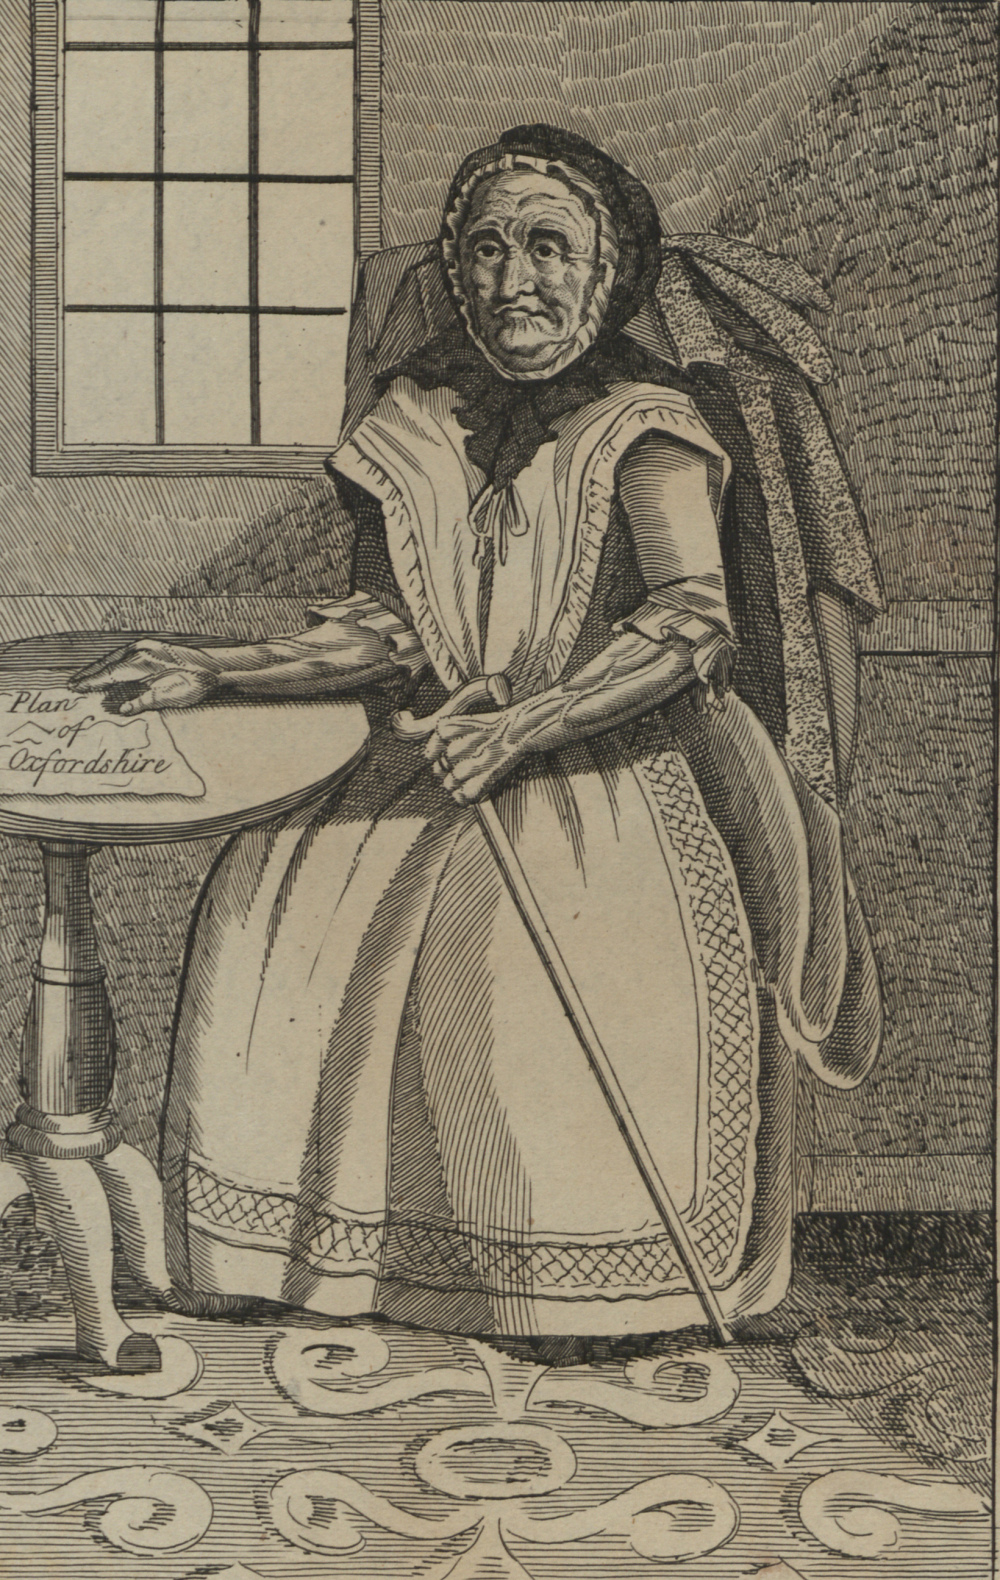 preview image for Print (Engraving) Elizabeth Alexander, published by William Richardson, London, 1809